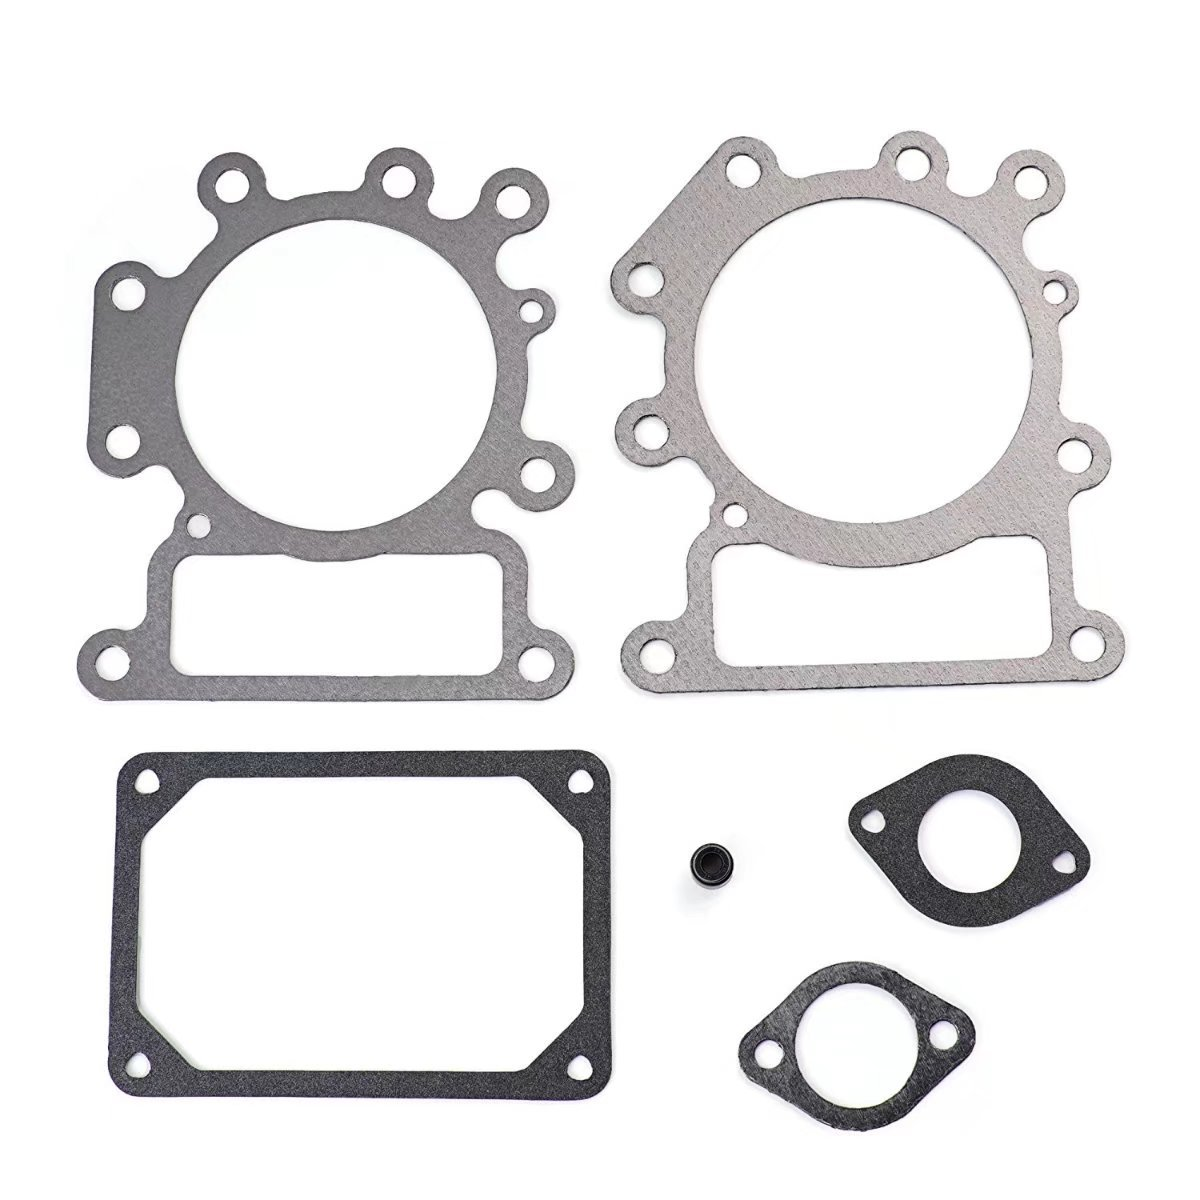 JahyShow Valve Gasket Set Replacement for Briggs & Stratton 794152 Replaces # 690190 by JahyShow